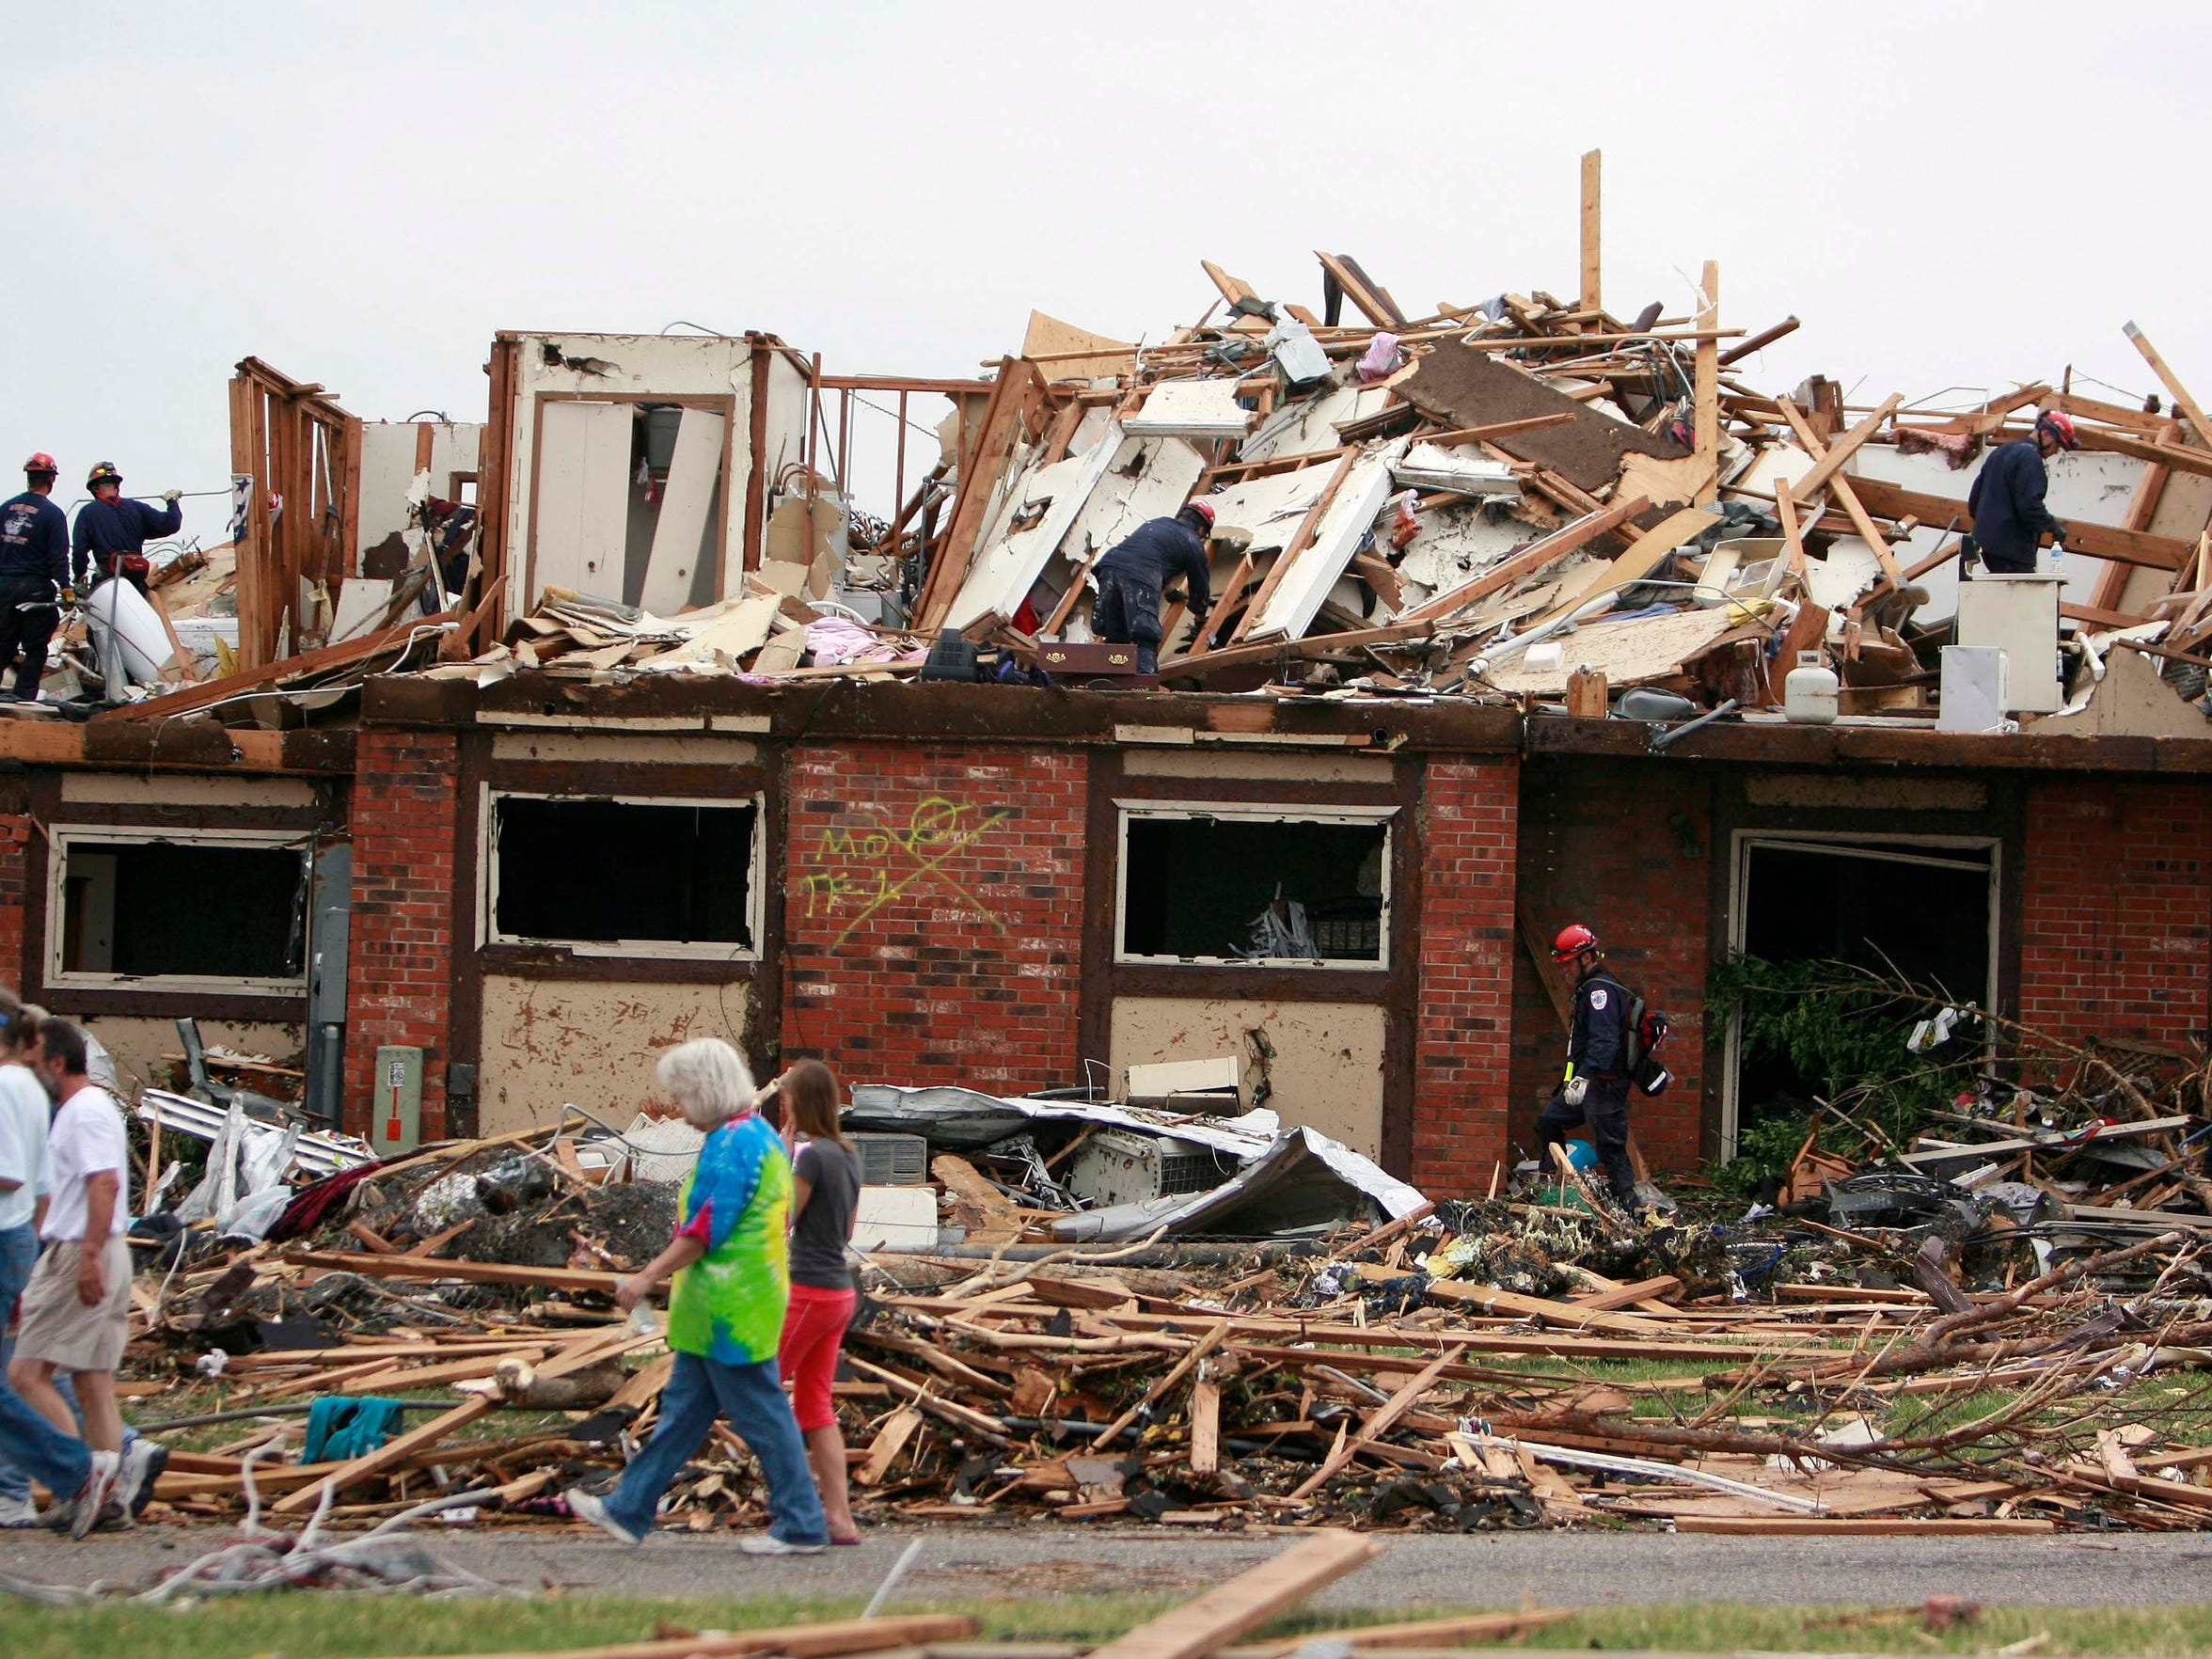 Passerby's walk past a destroyed apartment complex on 26th St. as a search and rescue team combs through the debris looking for victims of Sundays tornado Tuesday, May 24, 2011. Nathan Papes/News-Leader